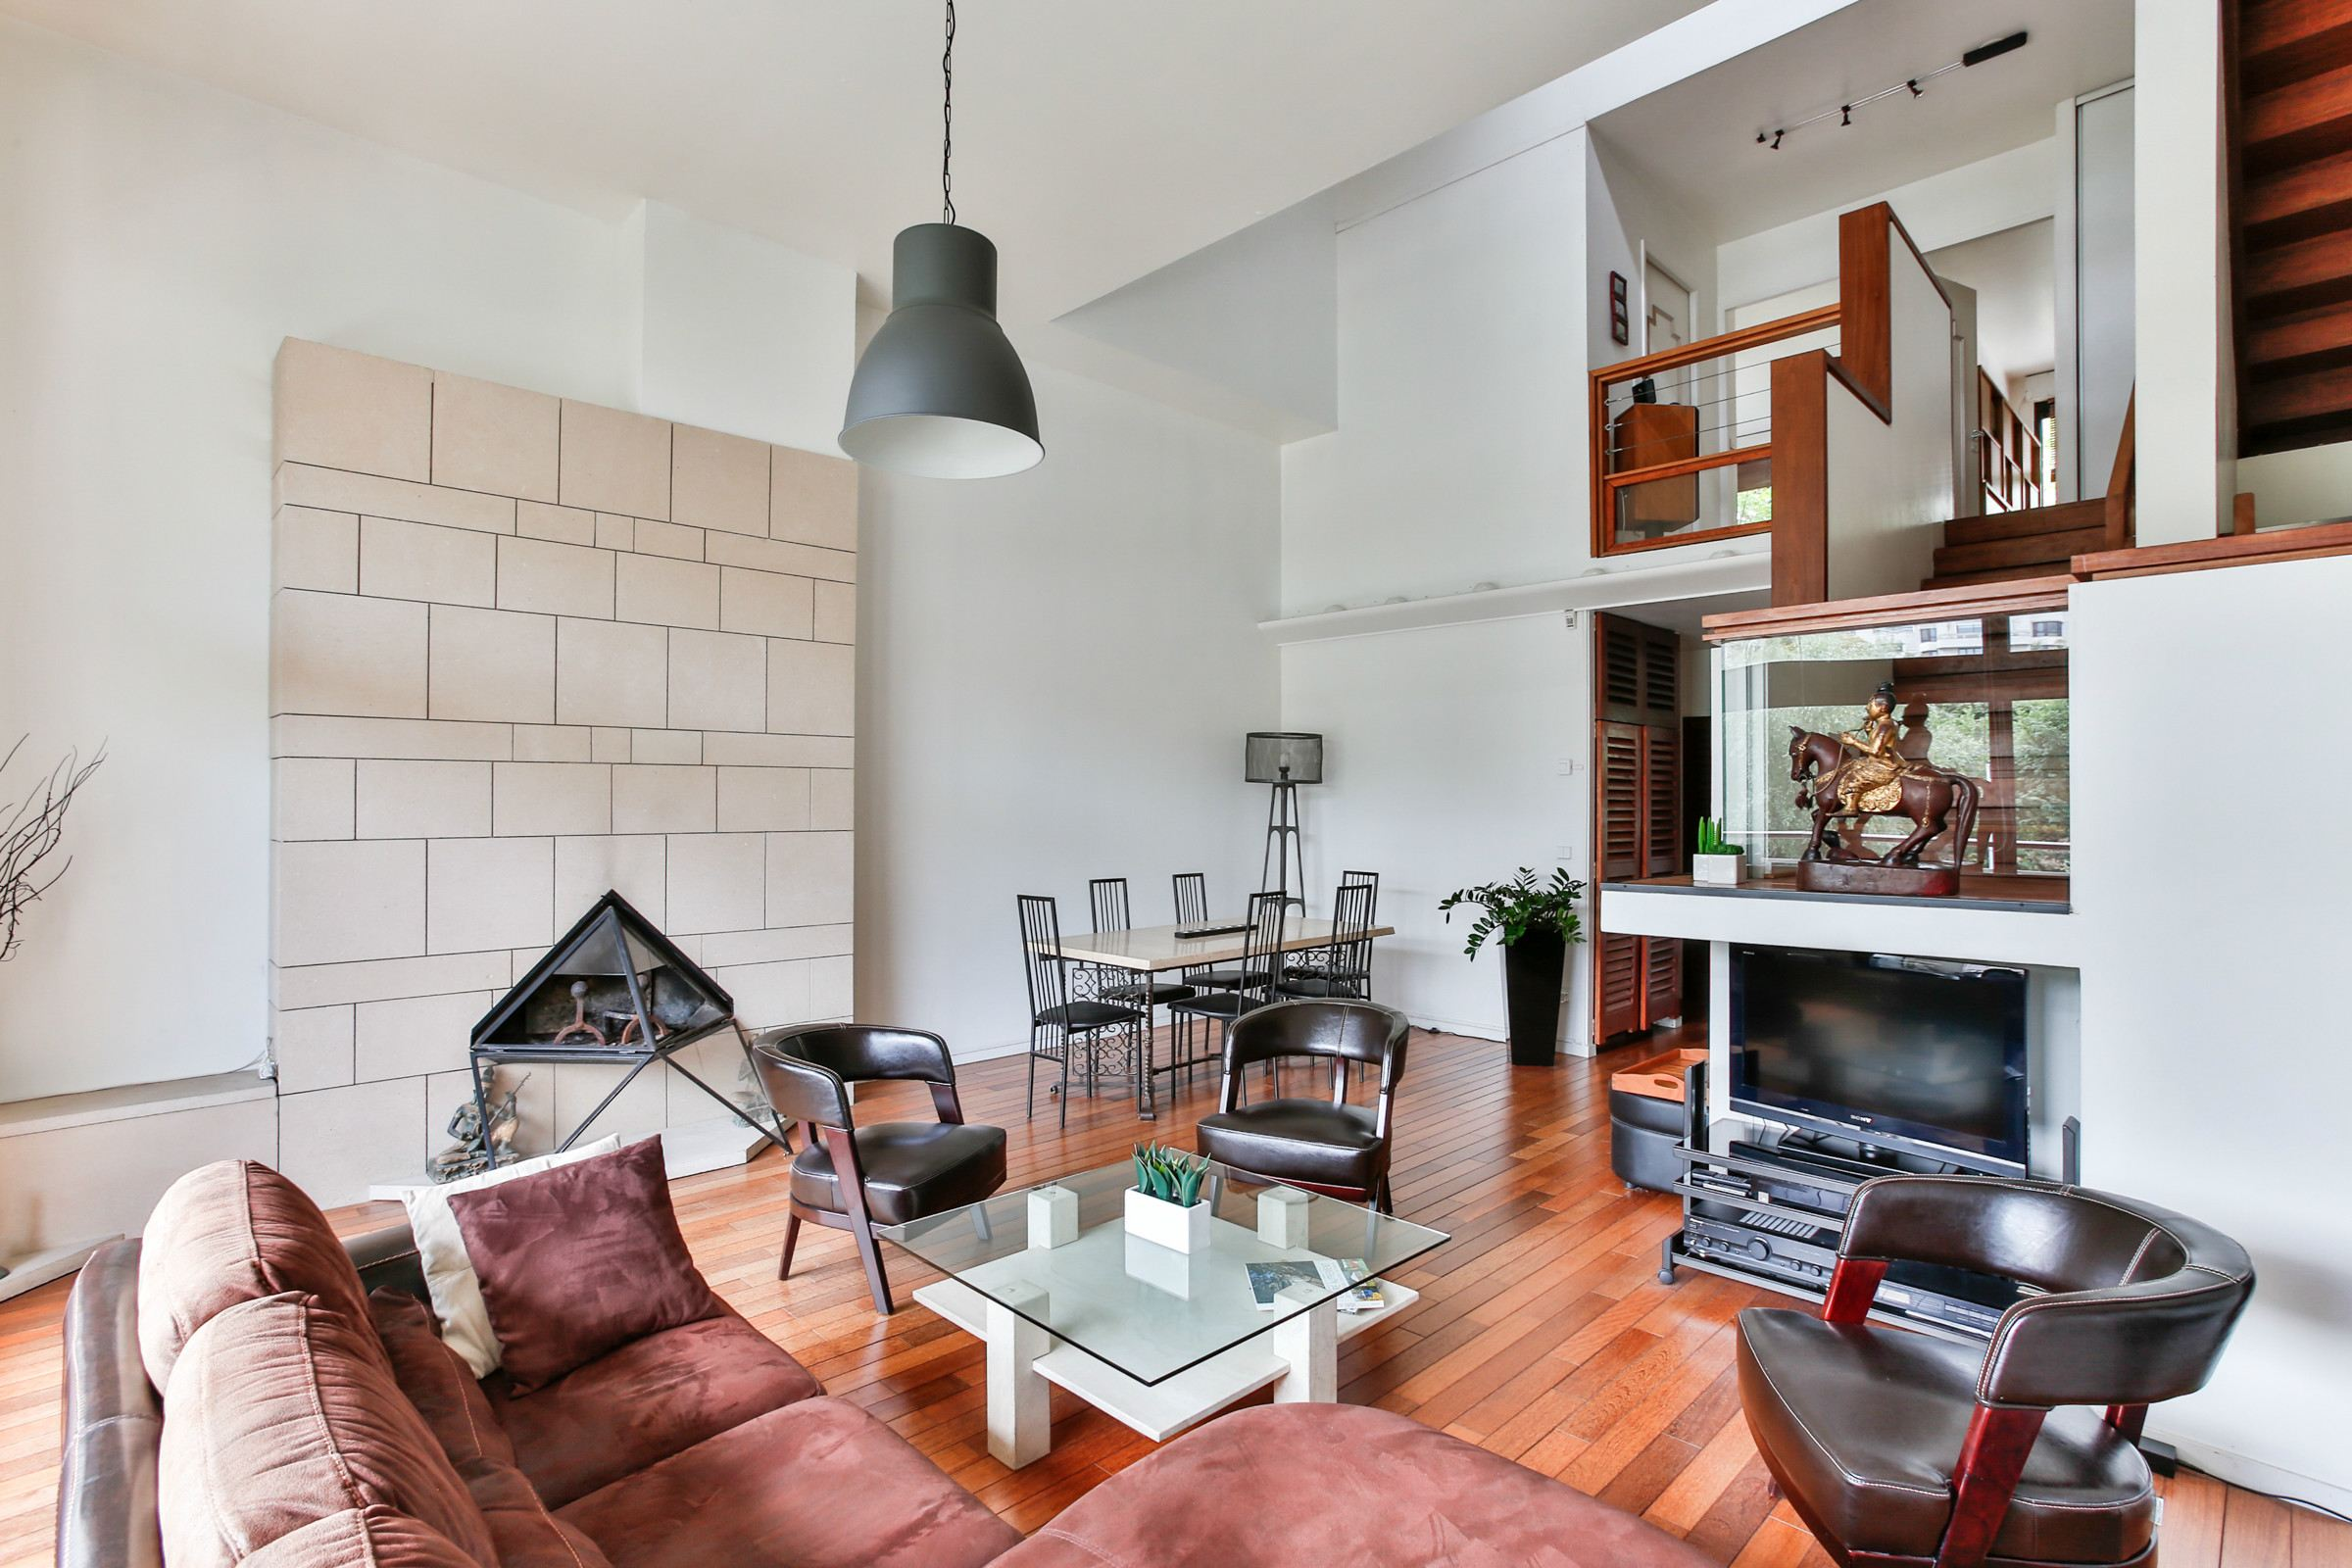 Property For Sale at Neuilly. Architect's house. Open view.